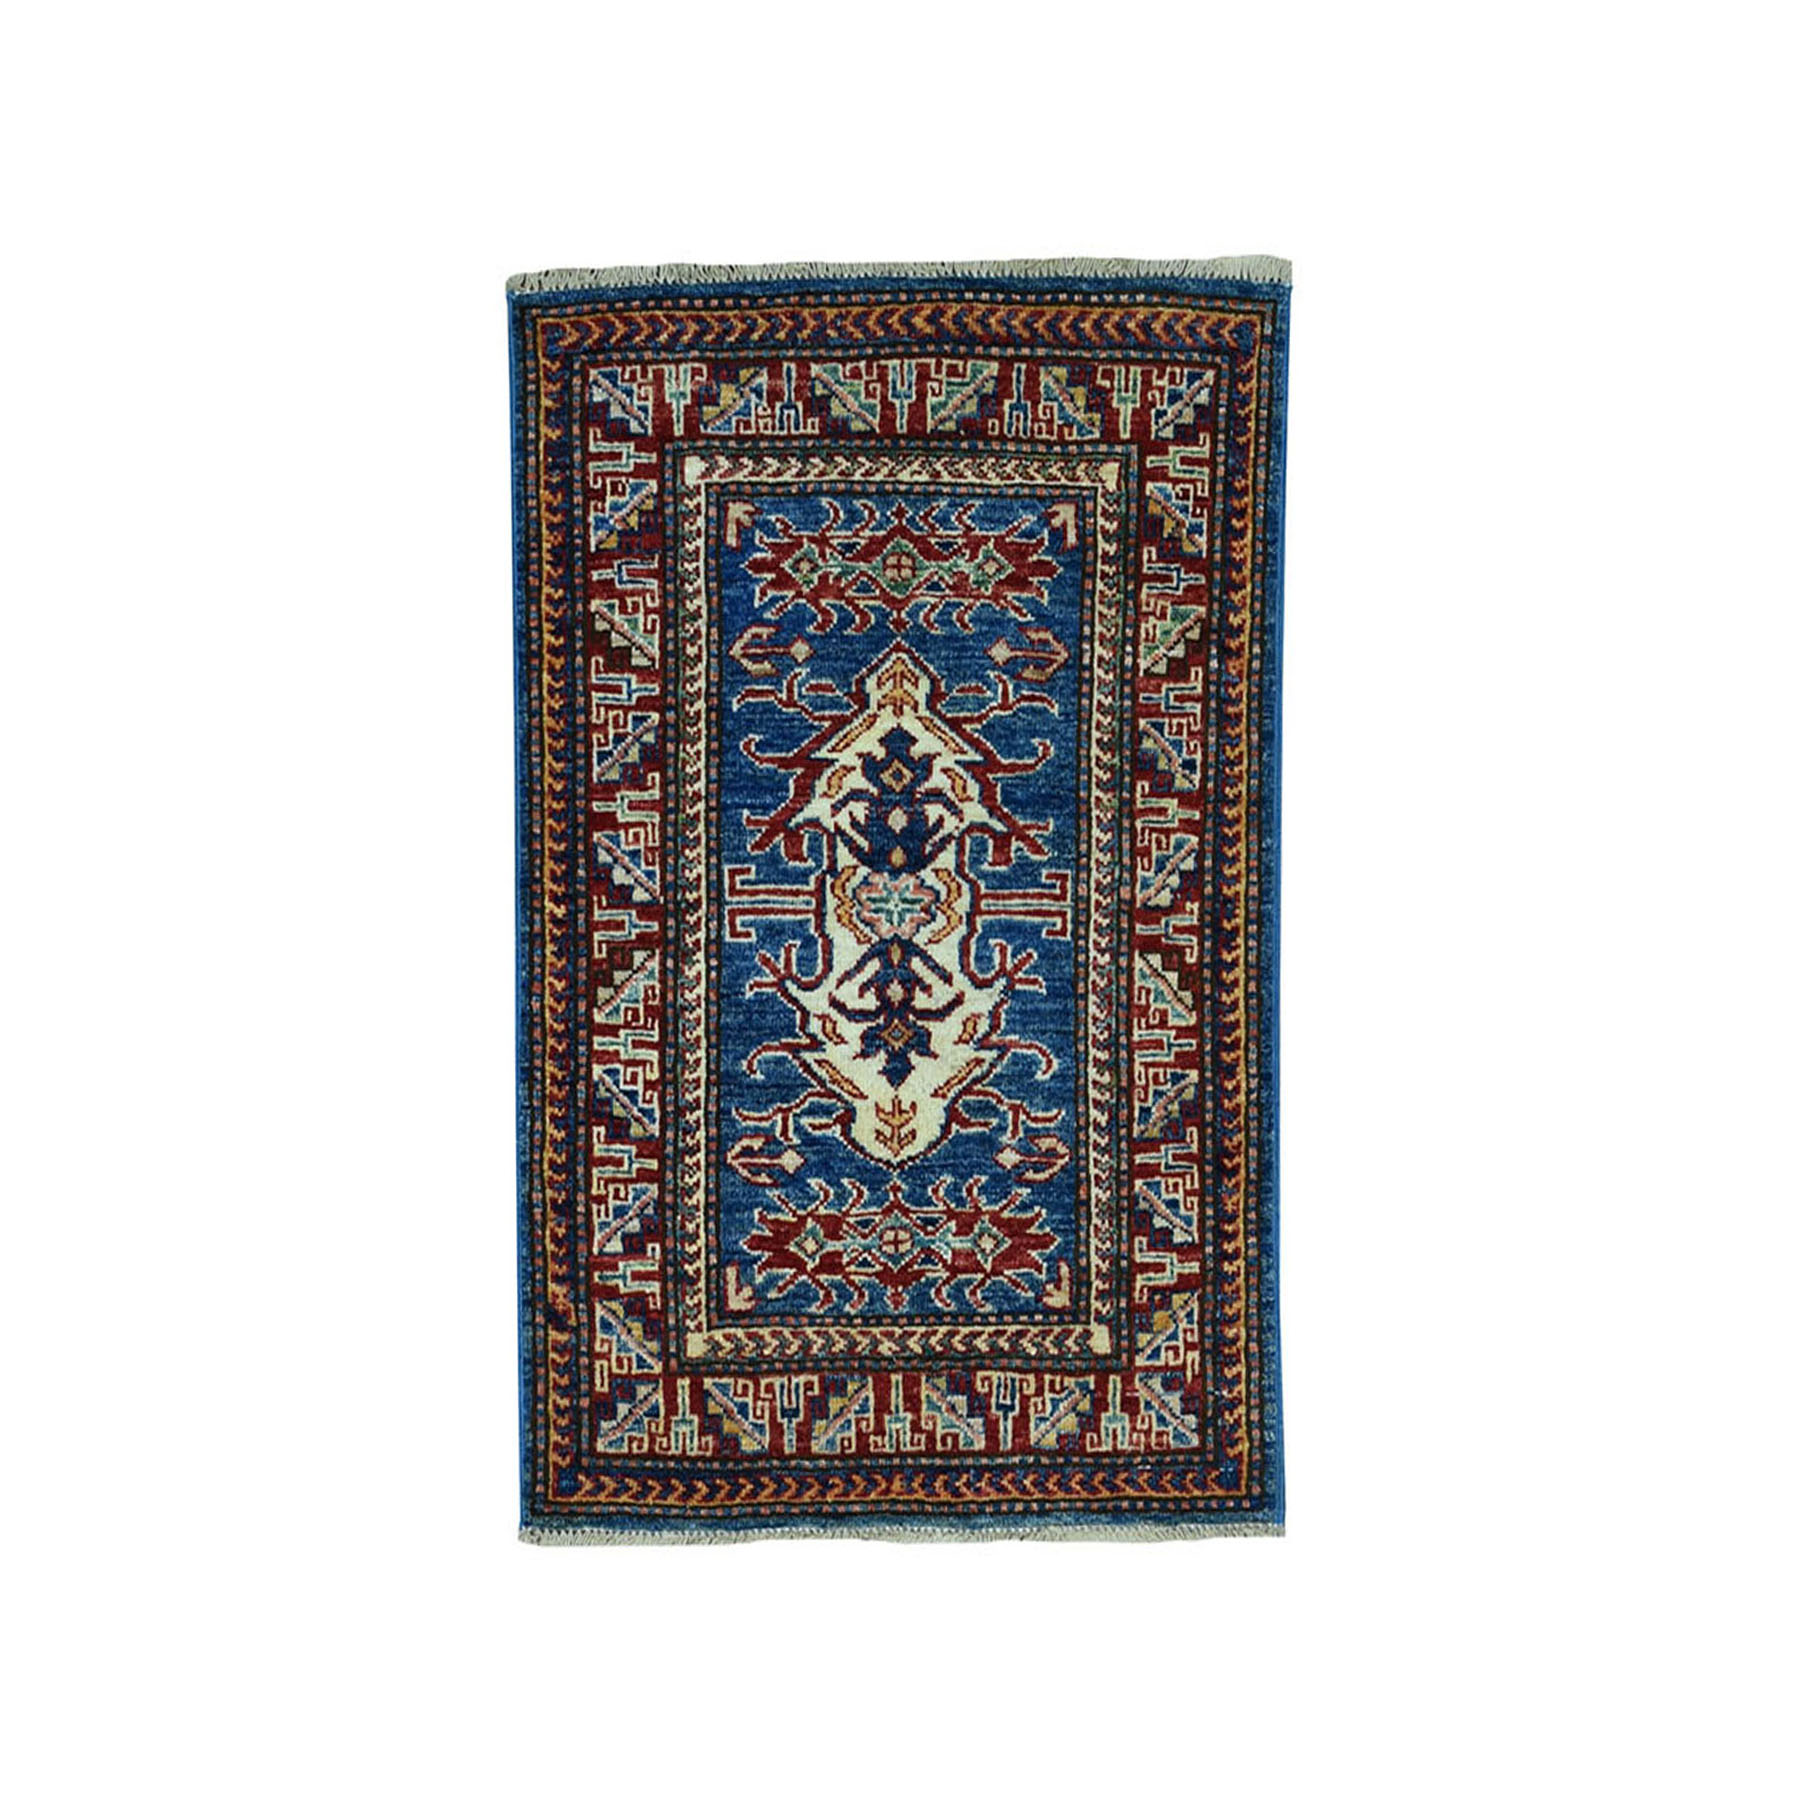 "2'X2'10"" Blue Super Kazak Pure Wool Geometric Design Hand-Knotted Oriental Rug moae09ad"